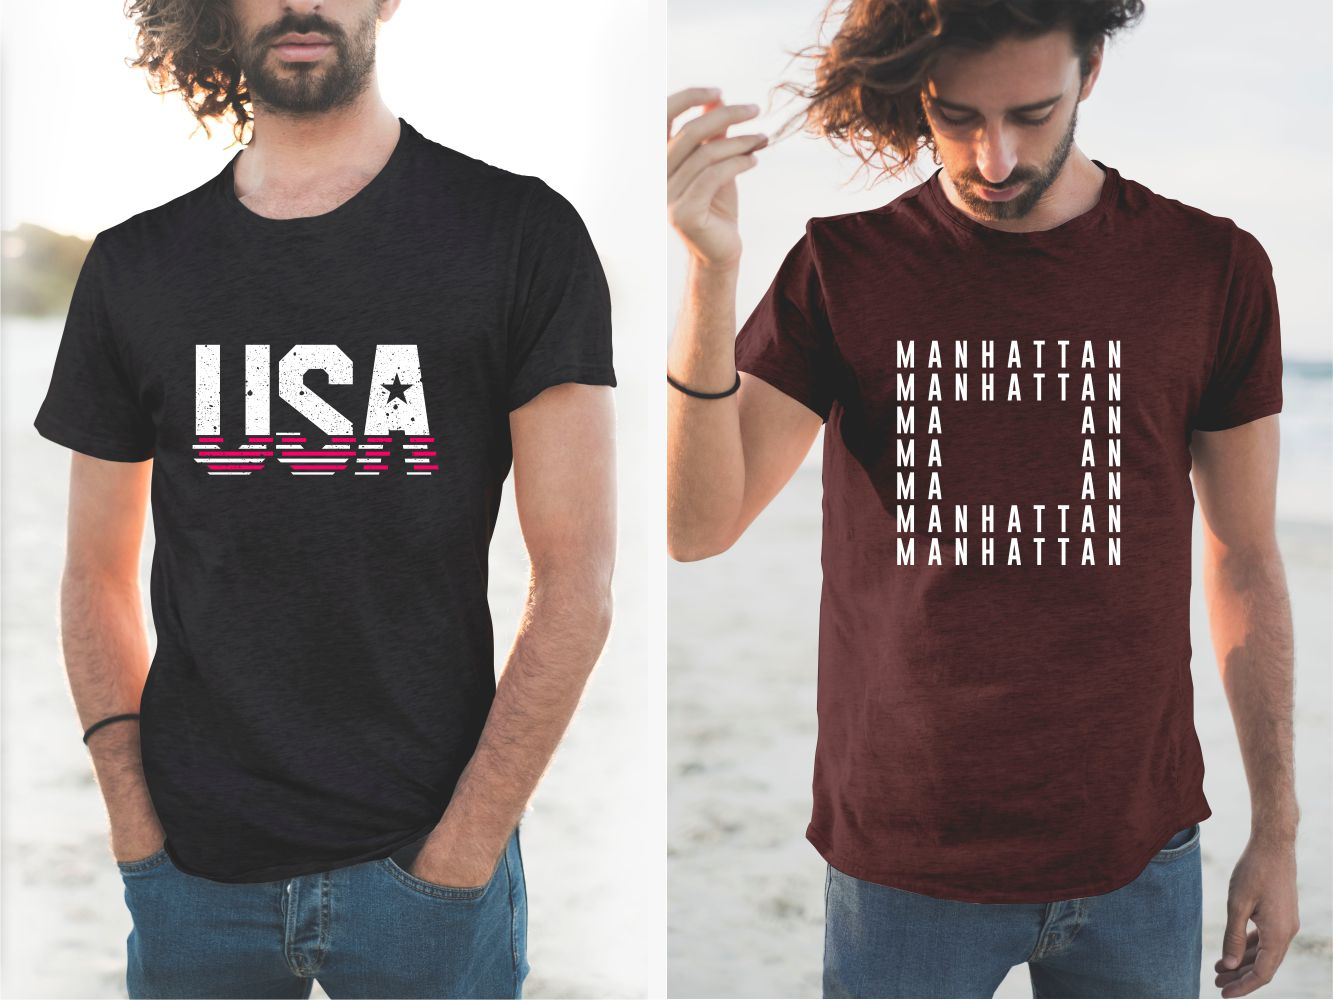 Burgundy and black T-shirts with USA and Manhattan lettering.